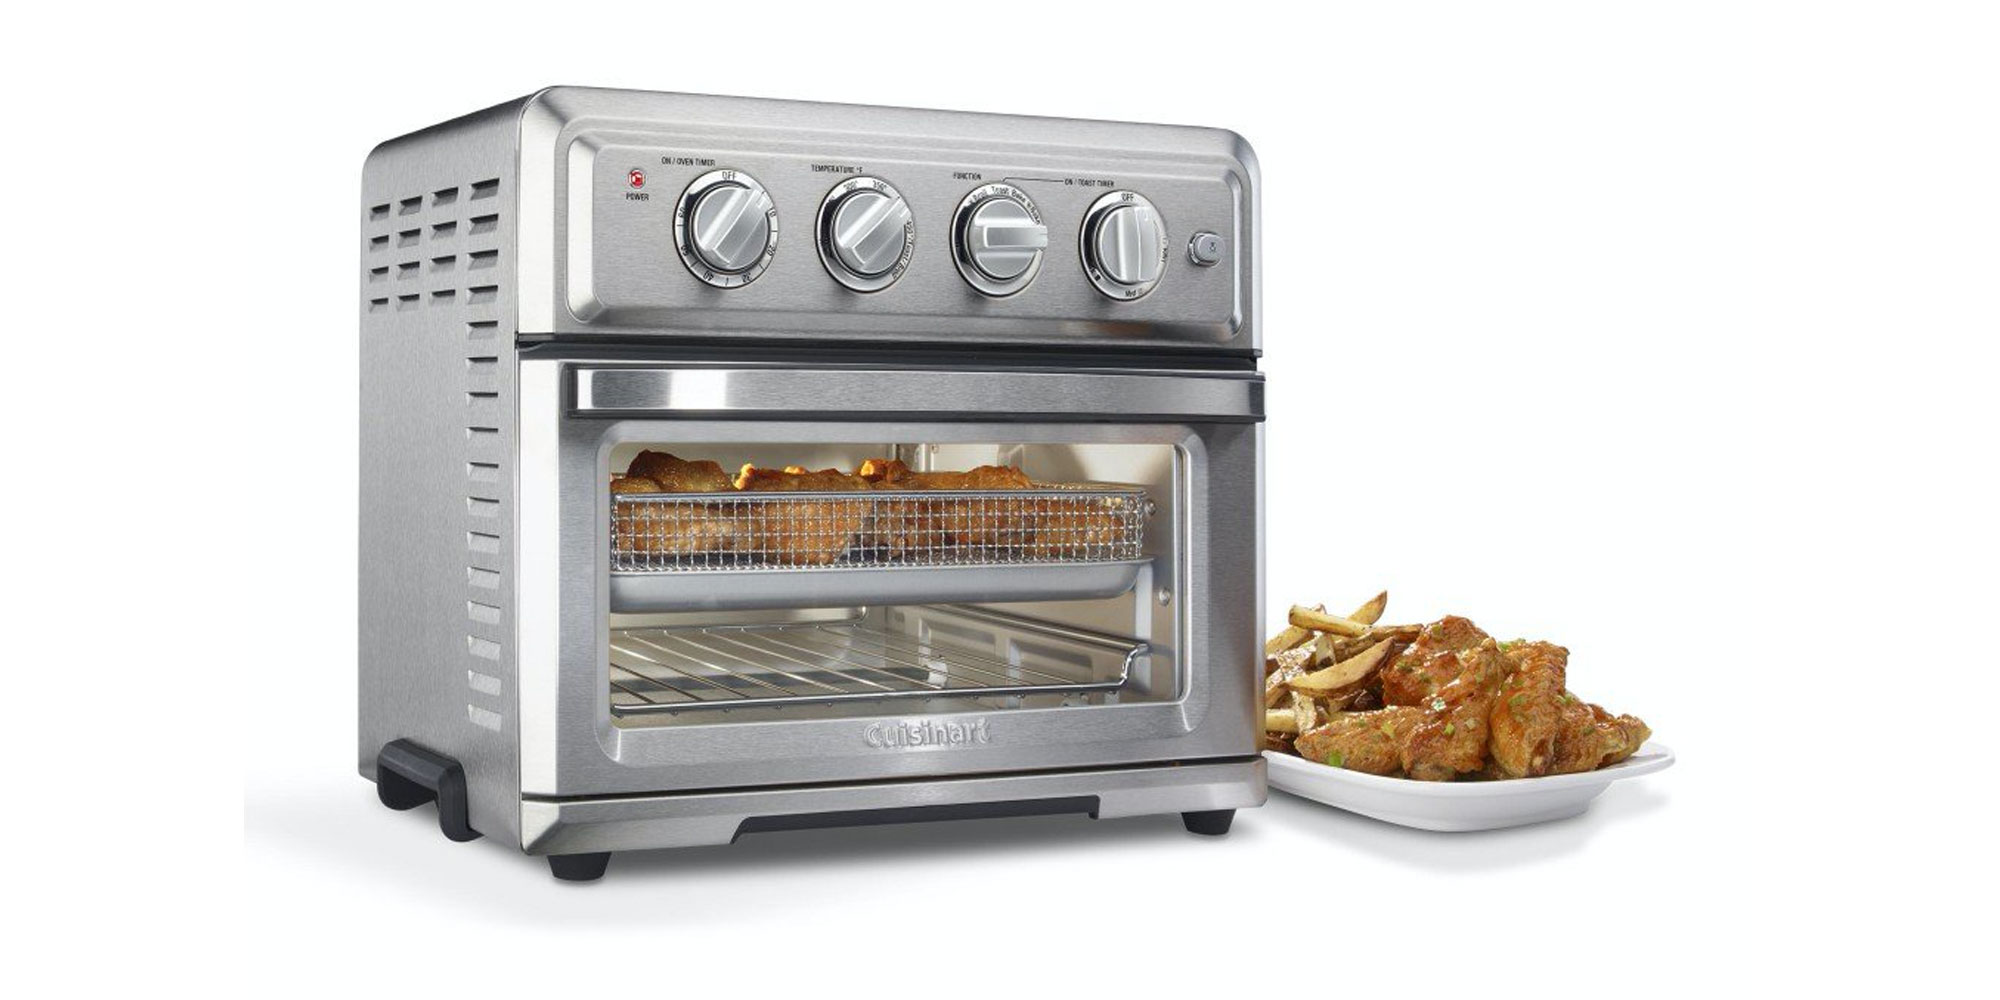 Cuisinart S Toaster Is Also An Air Fryer Convection Oven